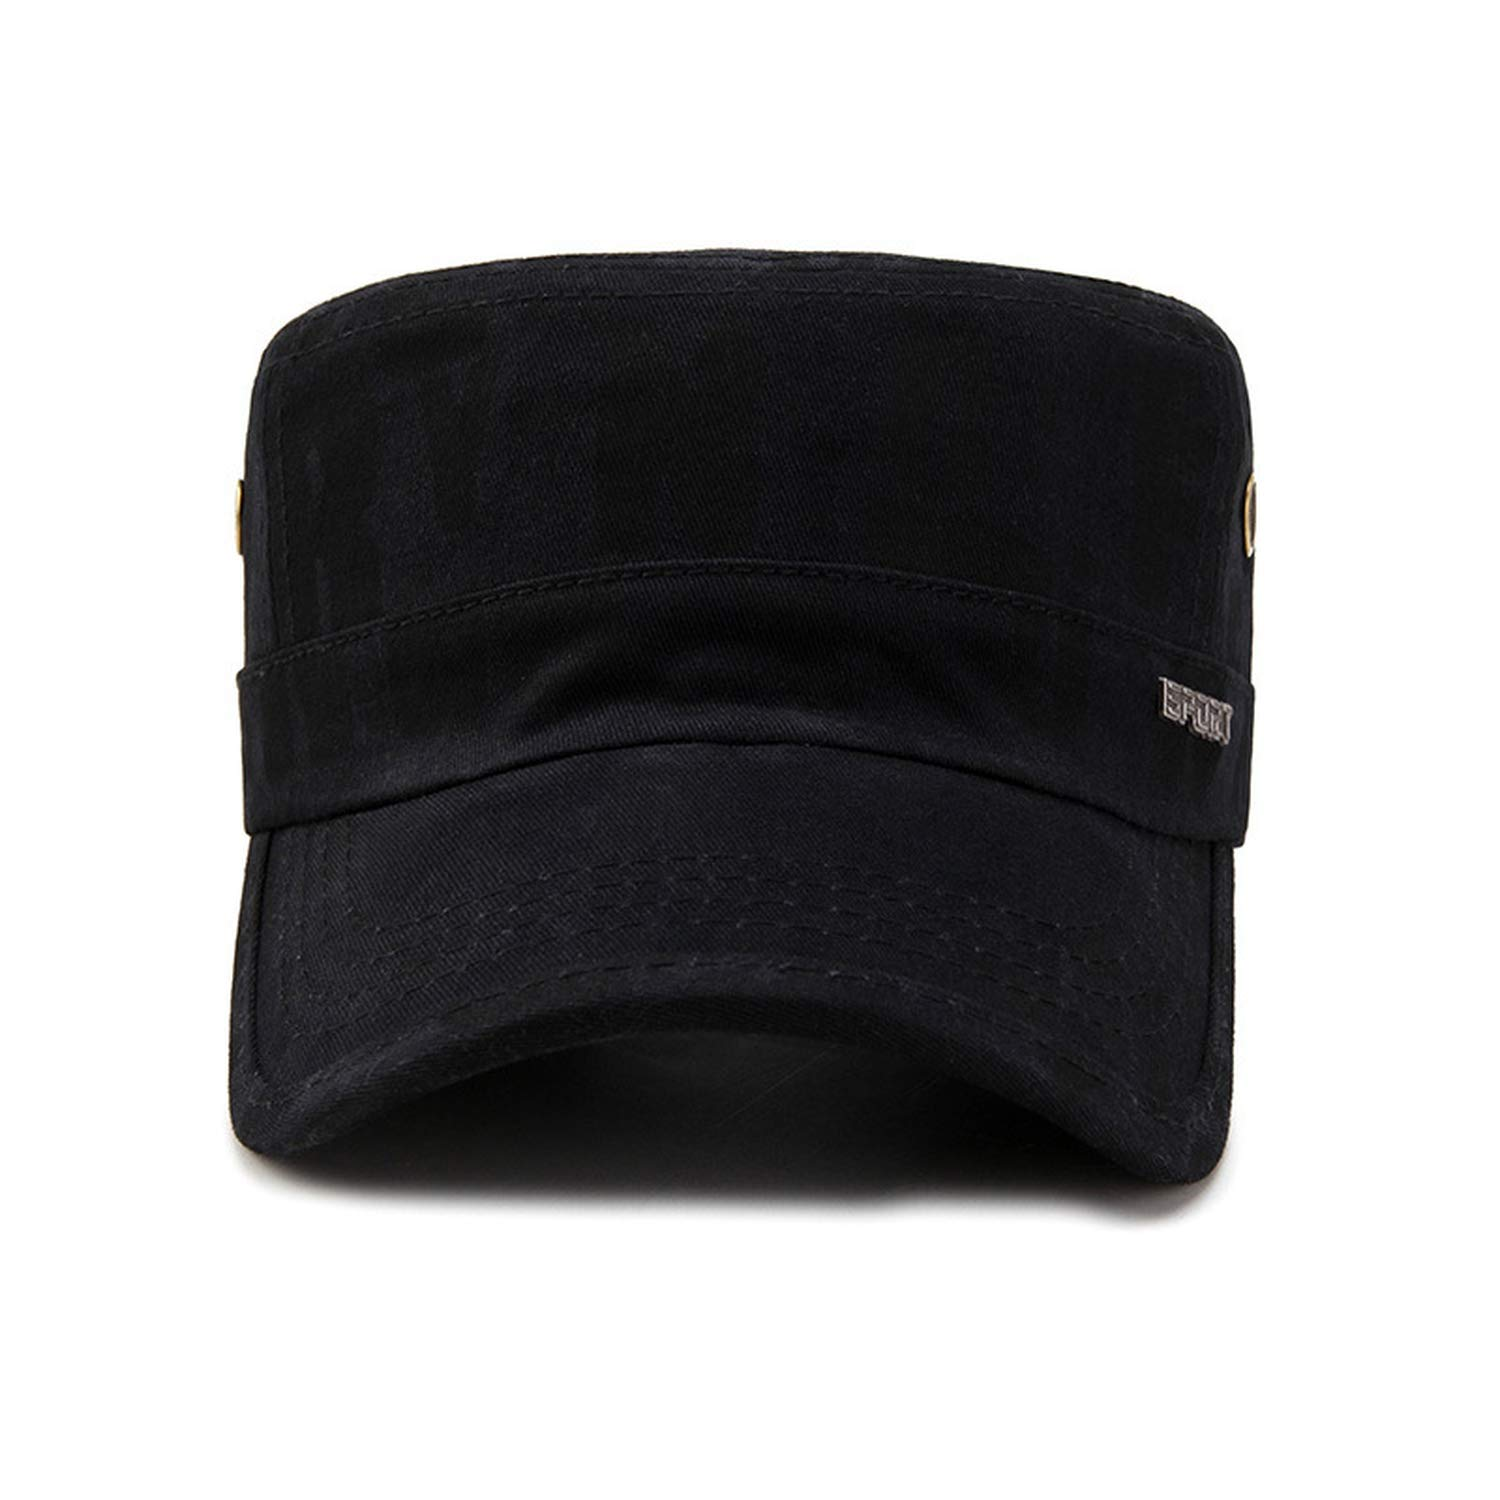 Solid Summer Flat Hats for Men Women Sun Visor Hat Sport Baseball Caps Black Dad Hat Men Trucker Cap